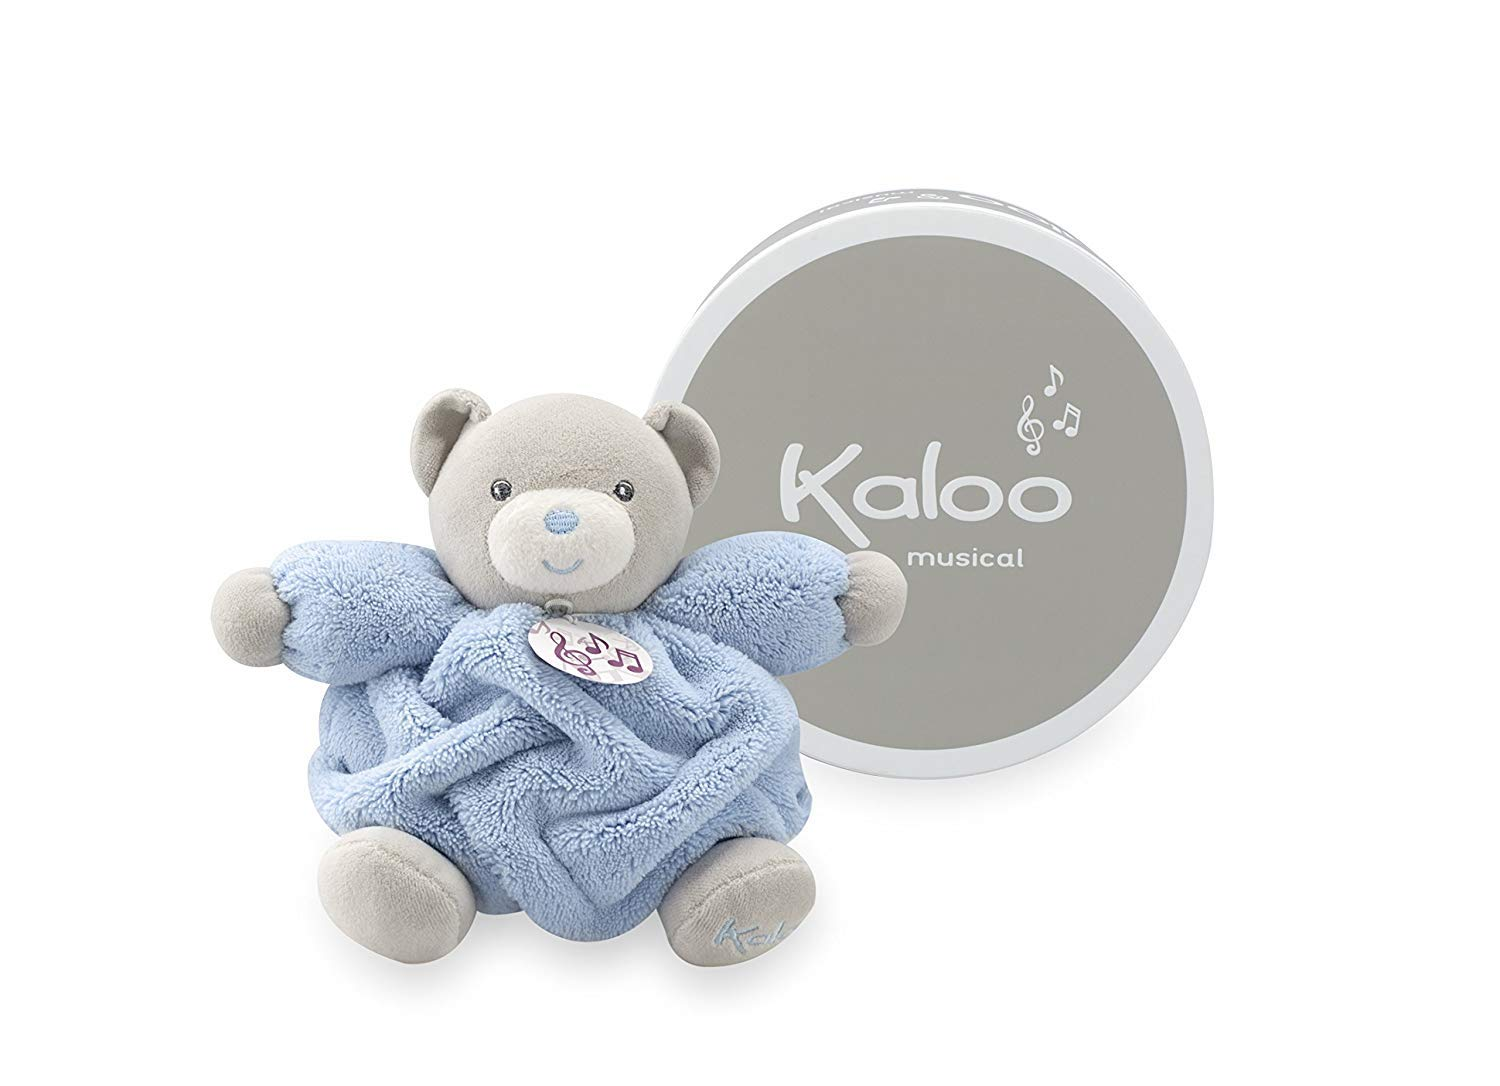 Kaloo Musical Chubby Bear 7 Inch- Small Blue Max 65% Ranking TOP6 OFF